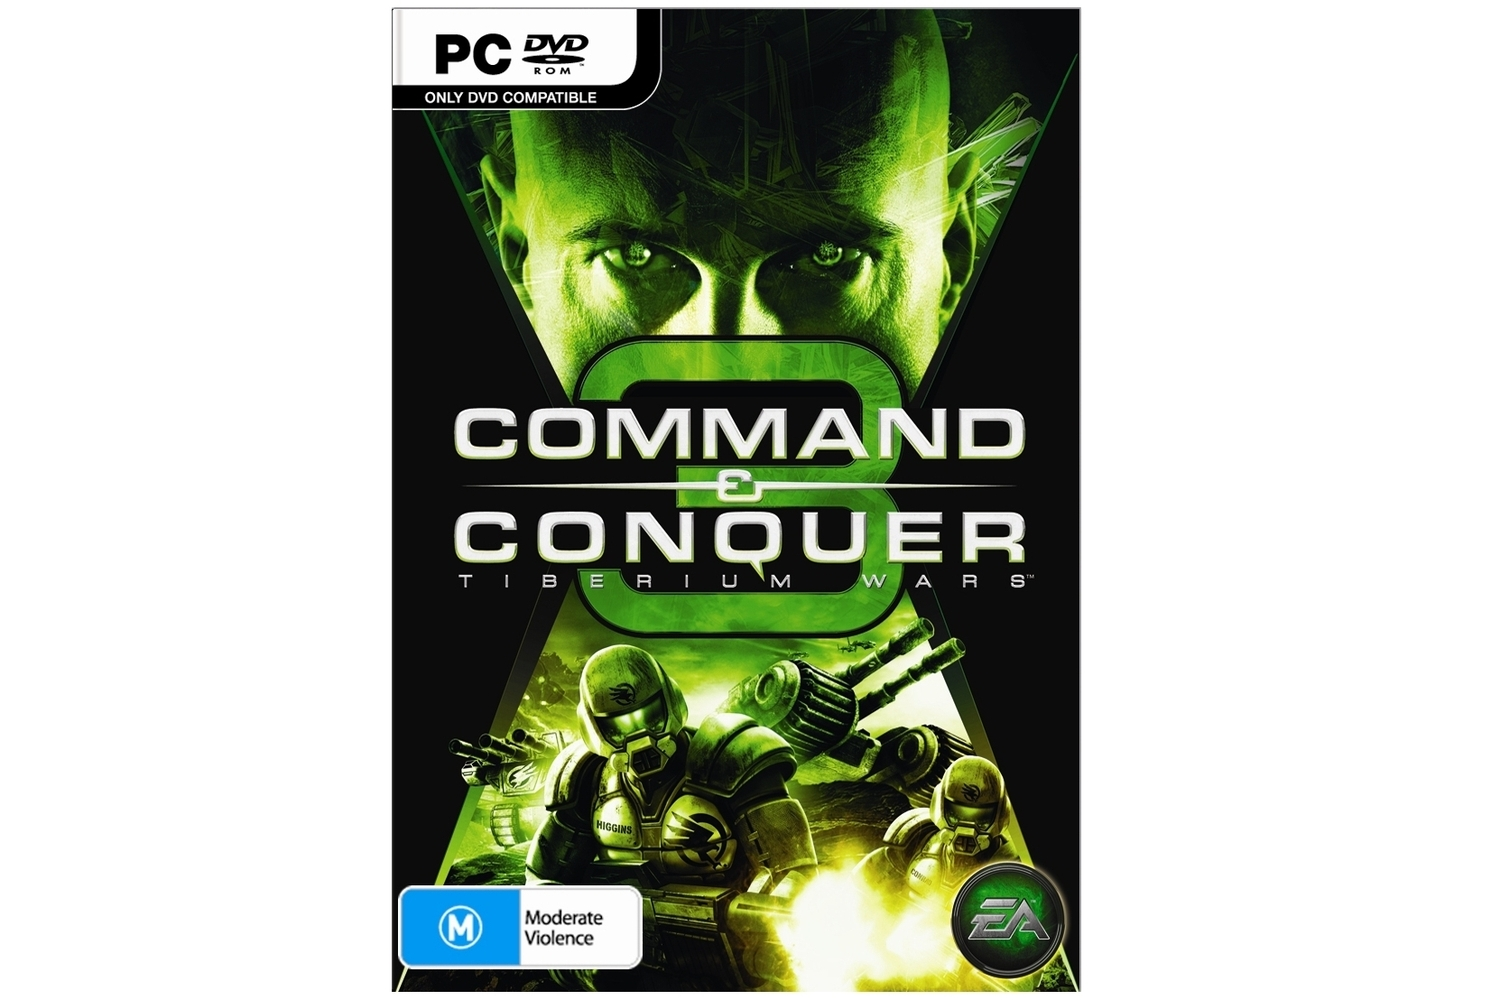 ea games command conquer 3 tiberium wars review games pc games pc world australia. Black Bedroom Furniture Sets. Home Design Ideas